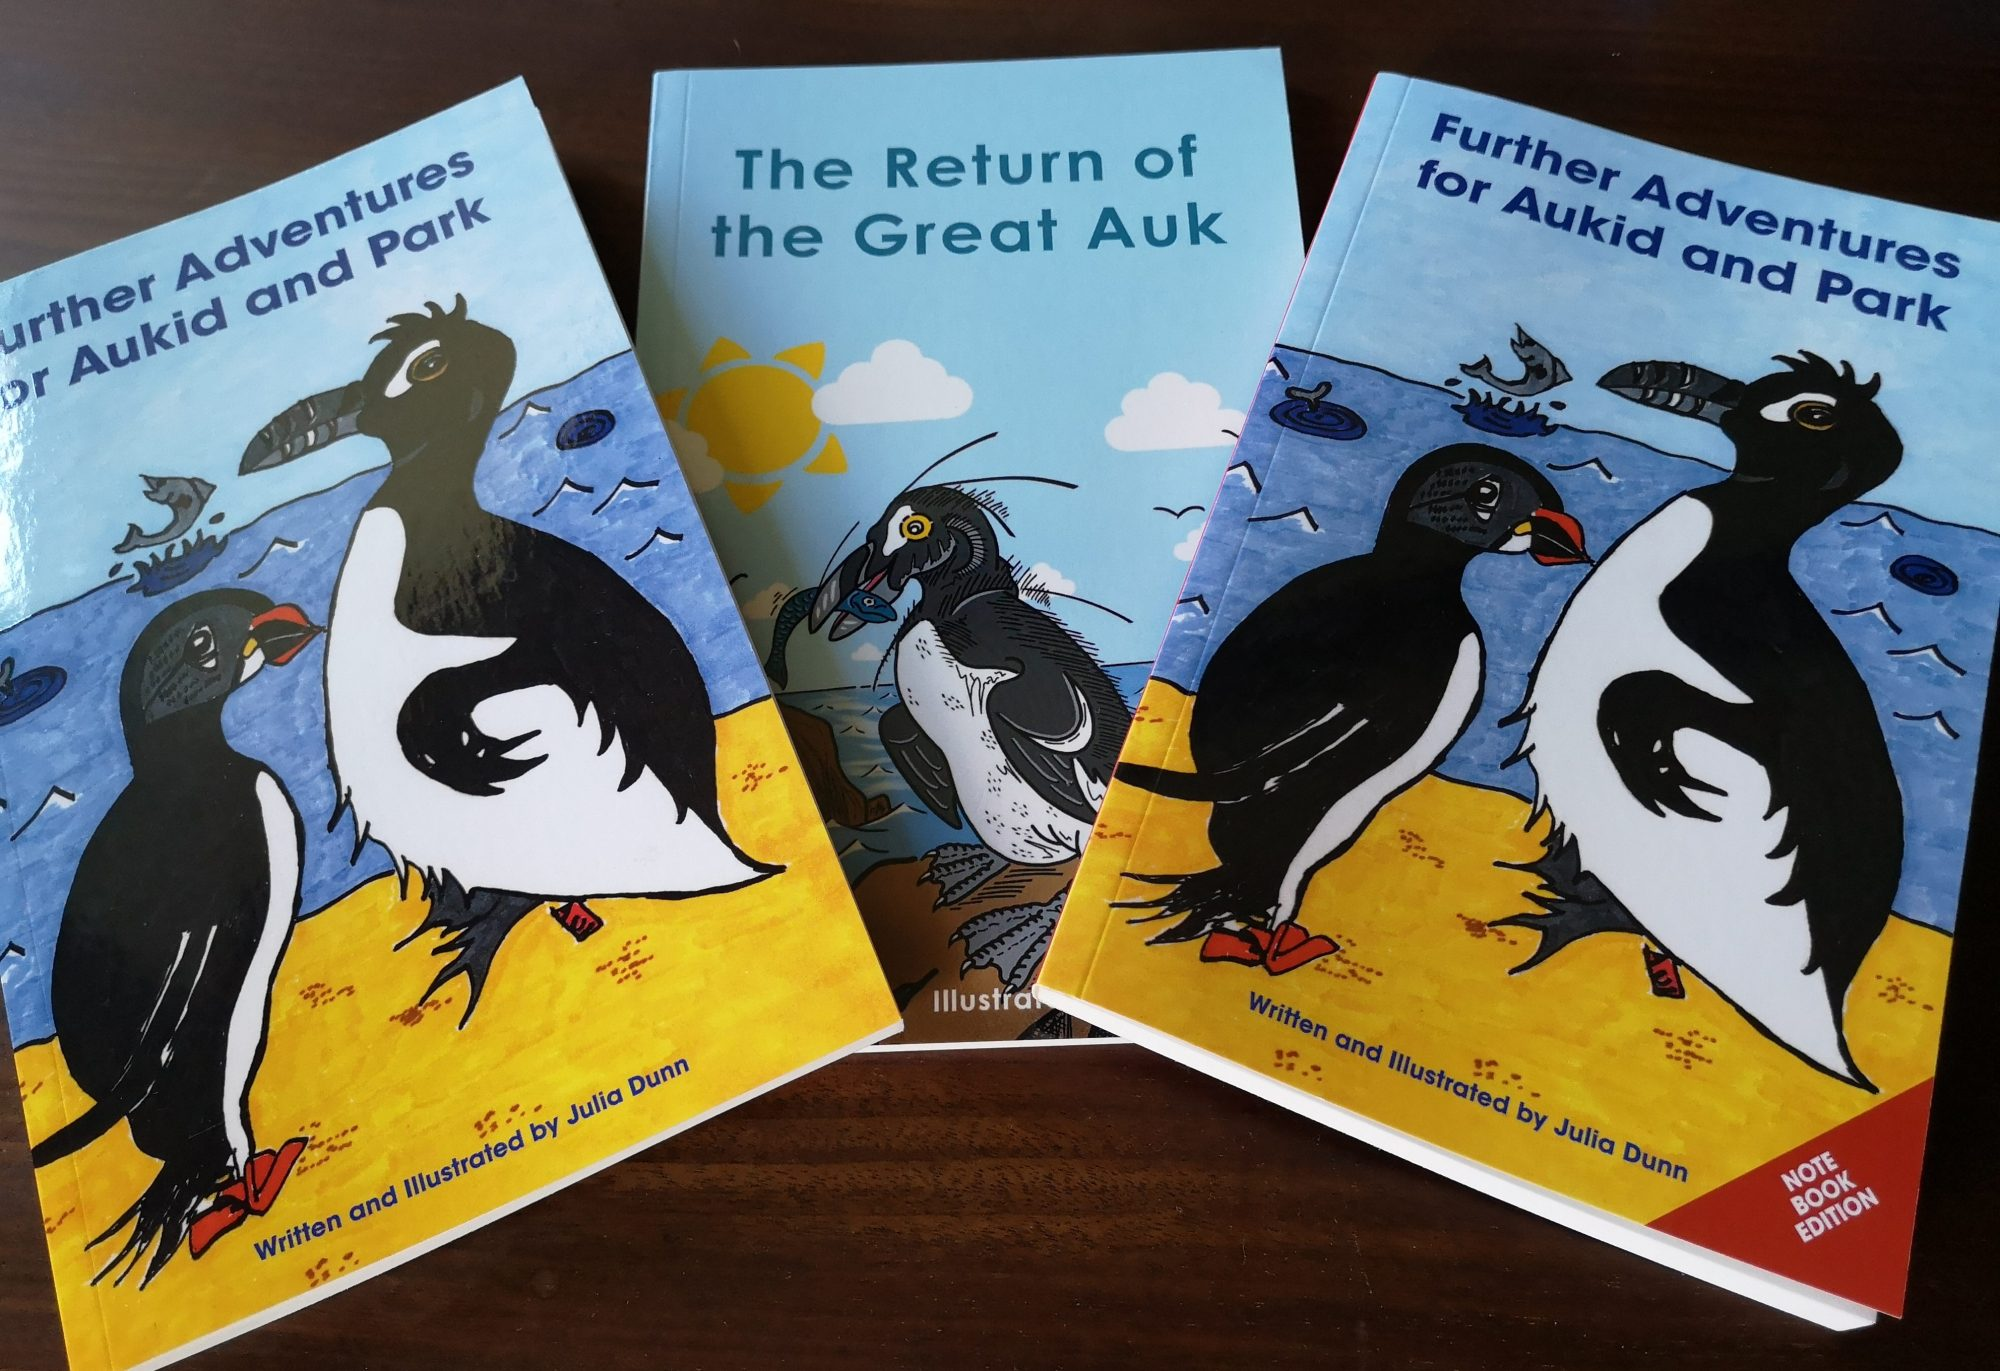 The Auk-Ward Company